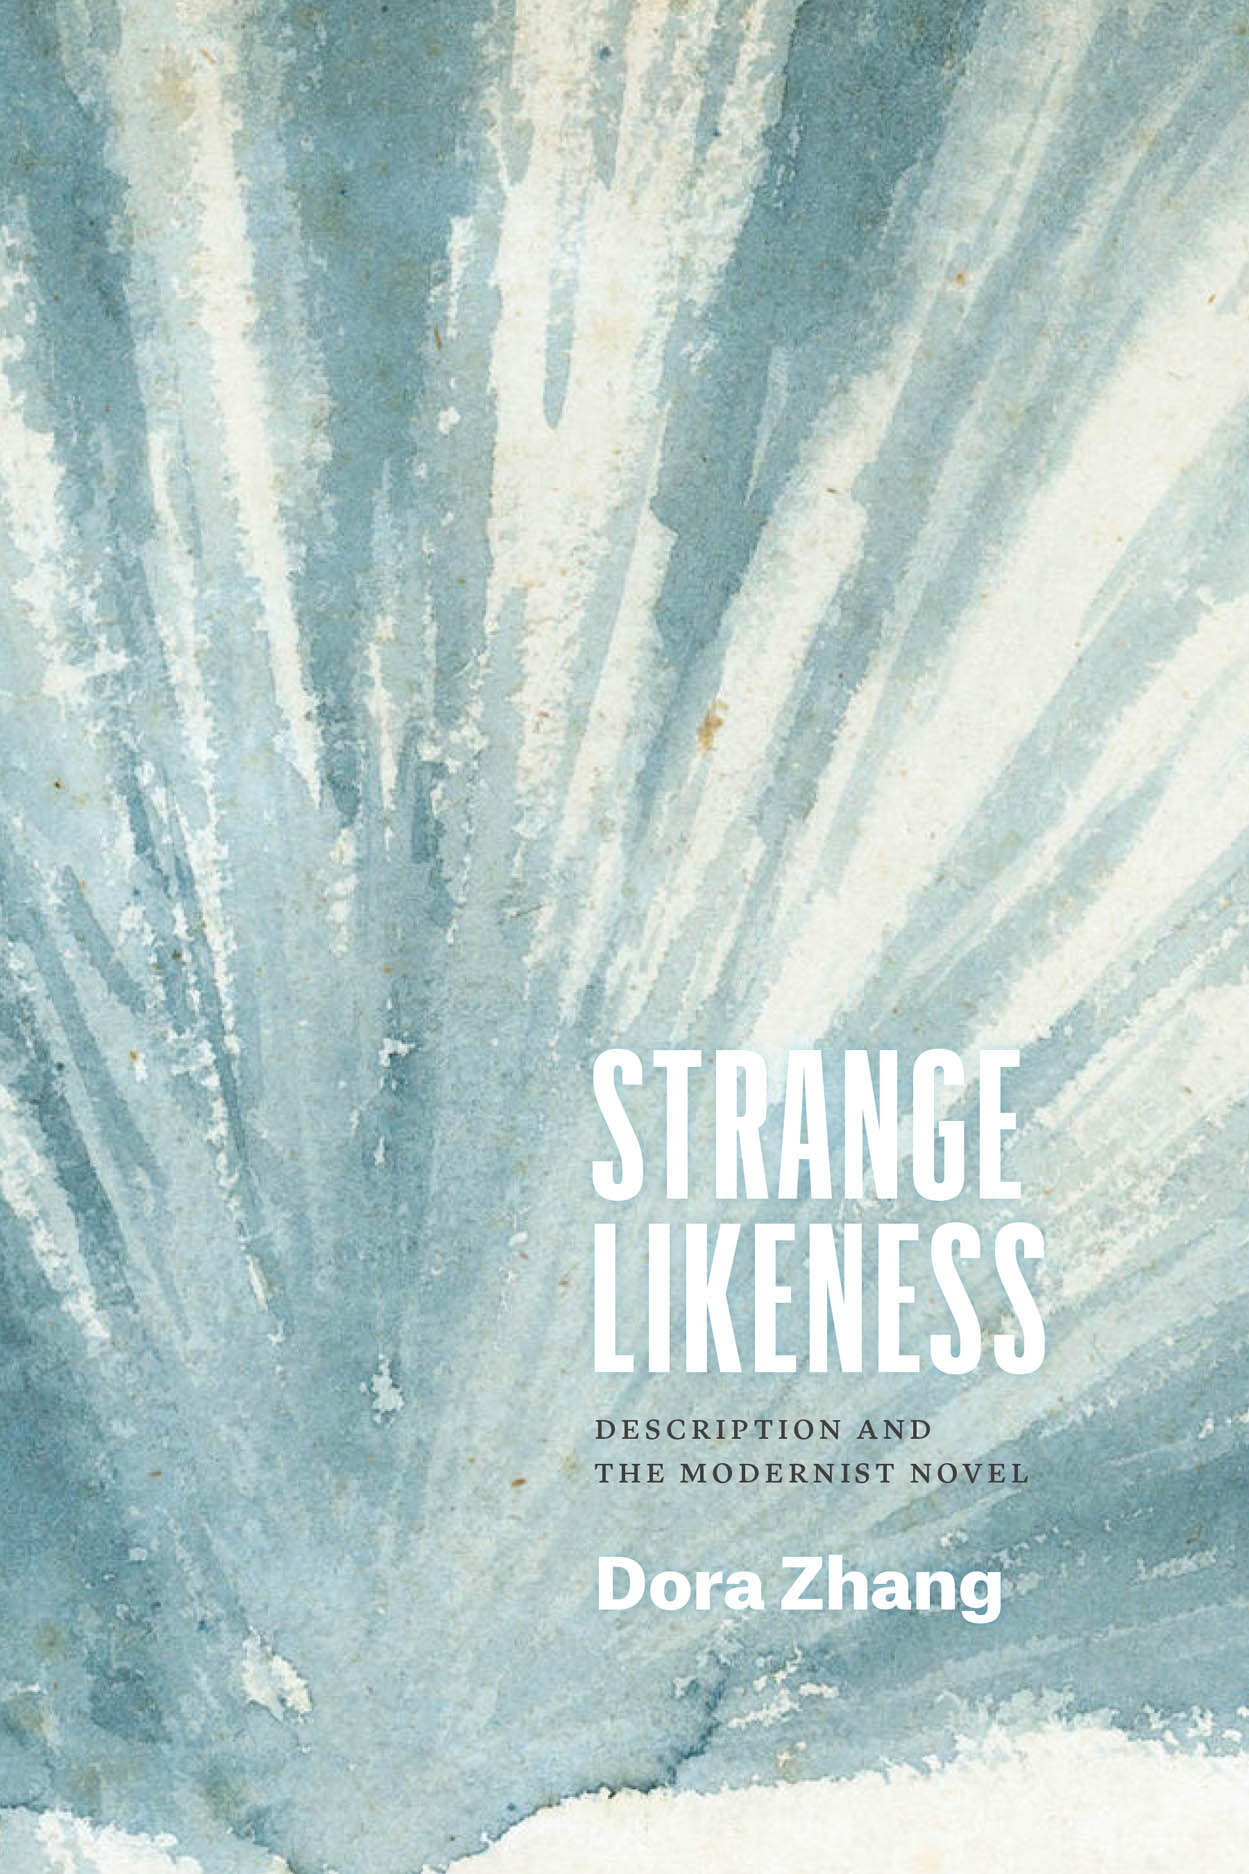 Strange Likeness: Description and the Modernist Novel